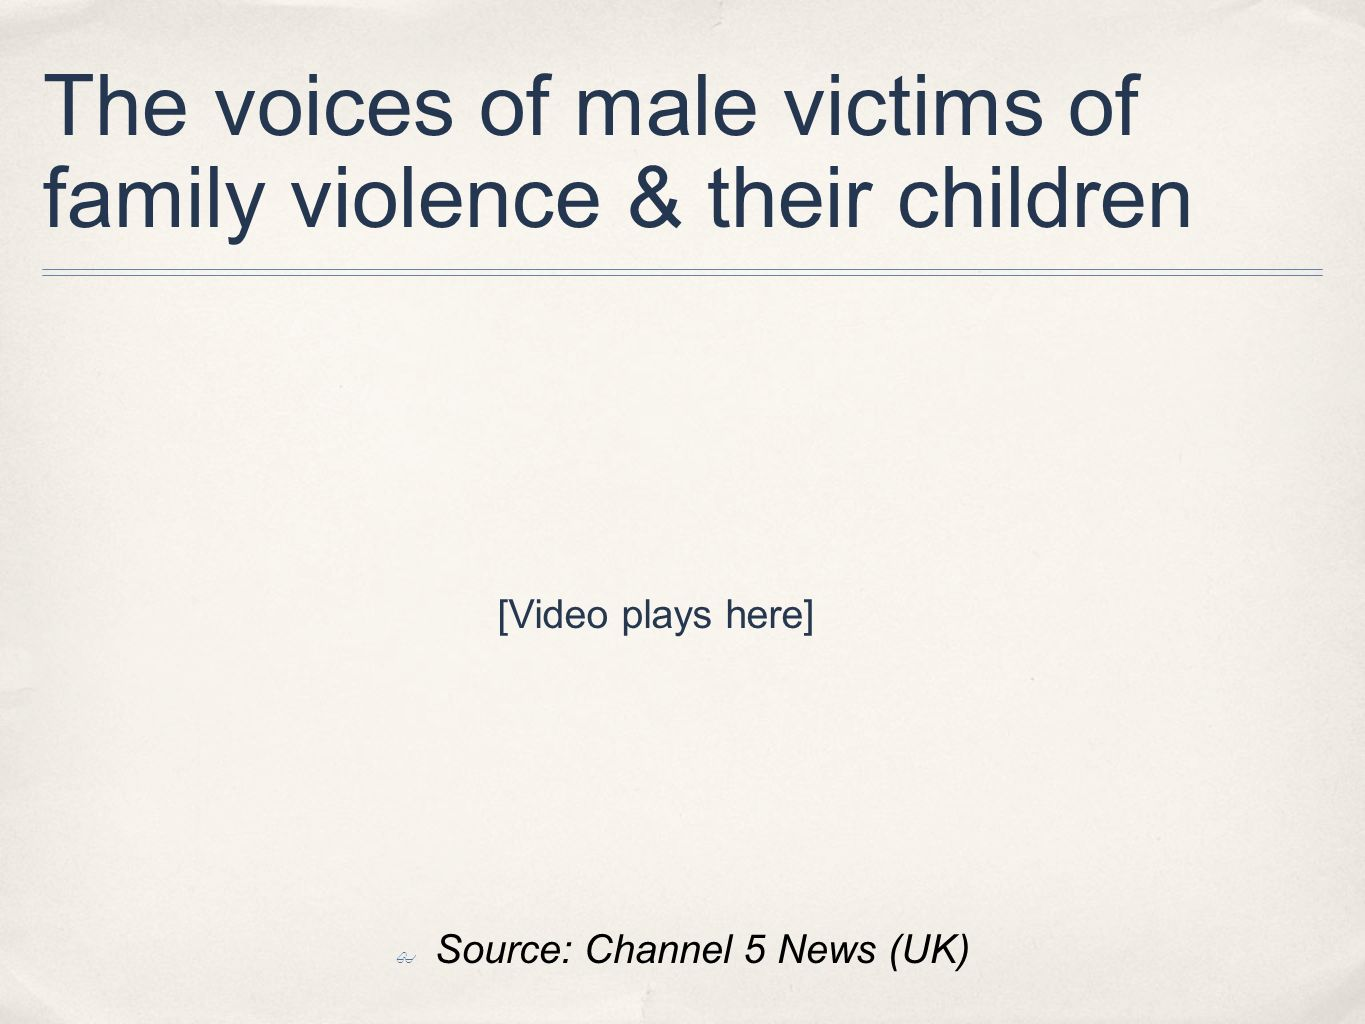 The voices of male victims of family violence & their children